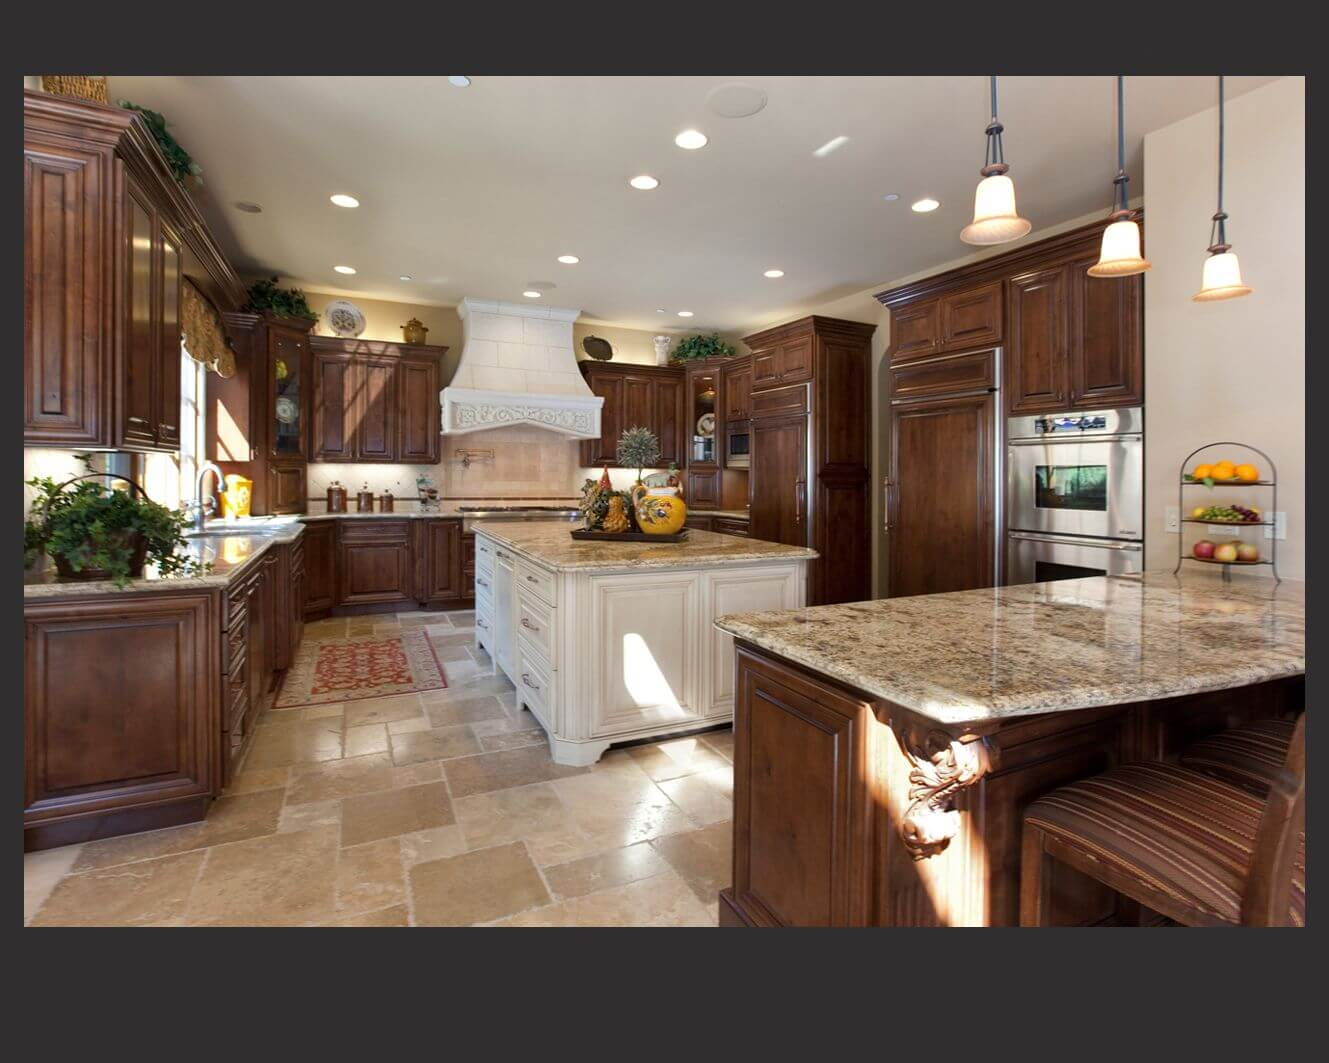 40 magnificent kitchen designs with dark cabinets wood floors in kitchen Richly detailed U shaped kitchen centers dark wood cabinetry around large white painted wood